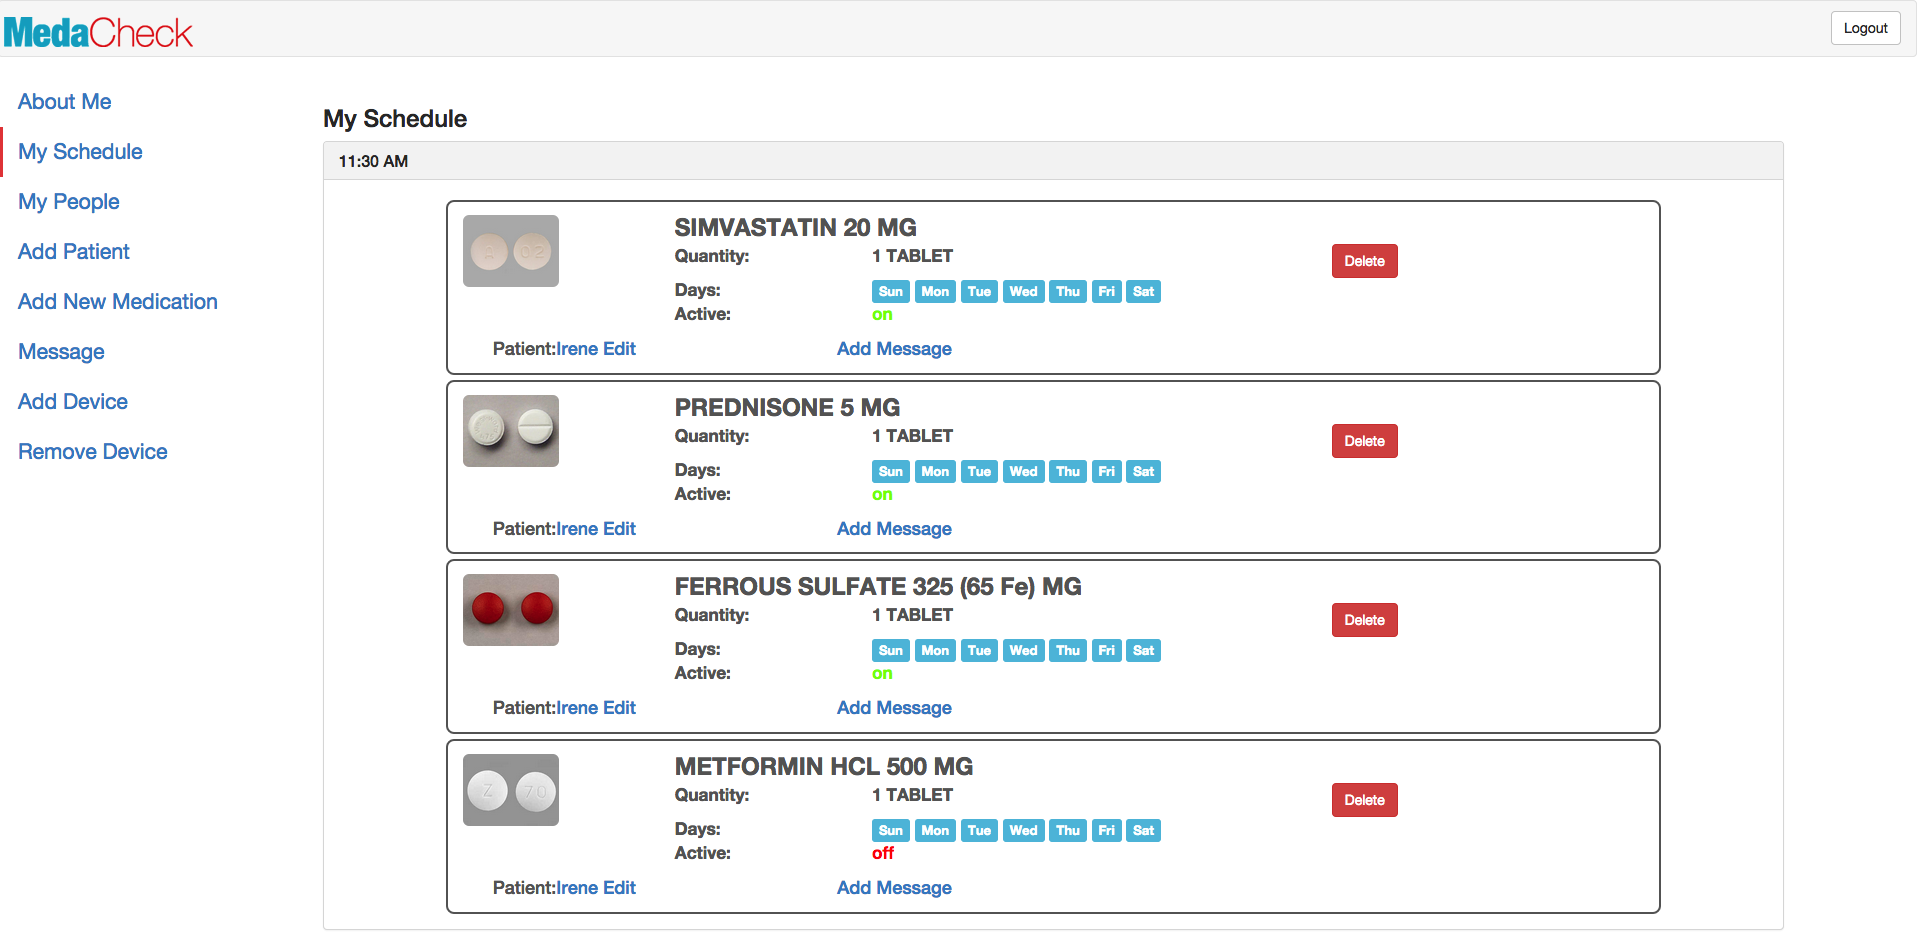 Medication adherence platform uses tablet, multiple reminders to condition seniors to take meds